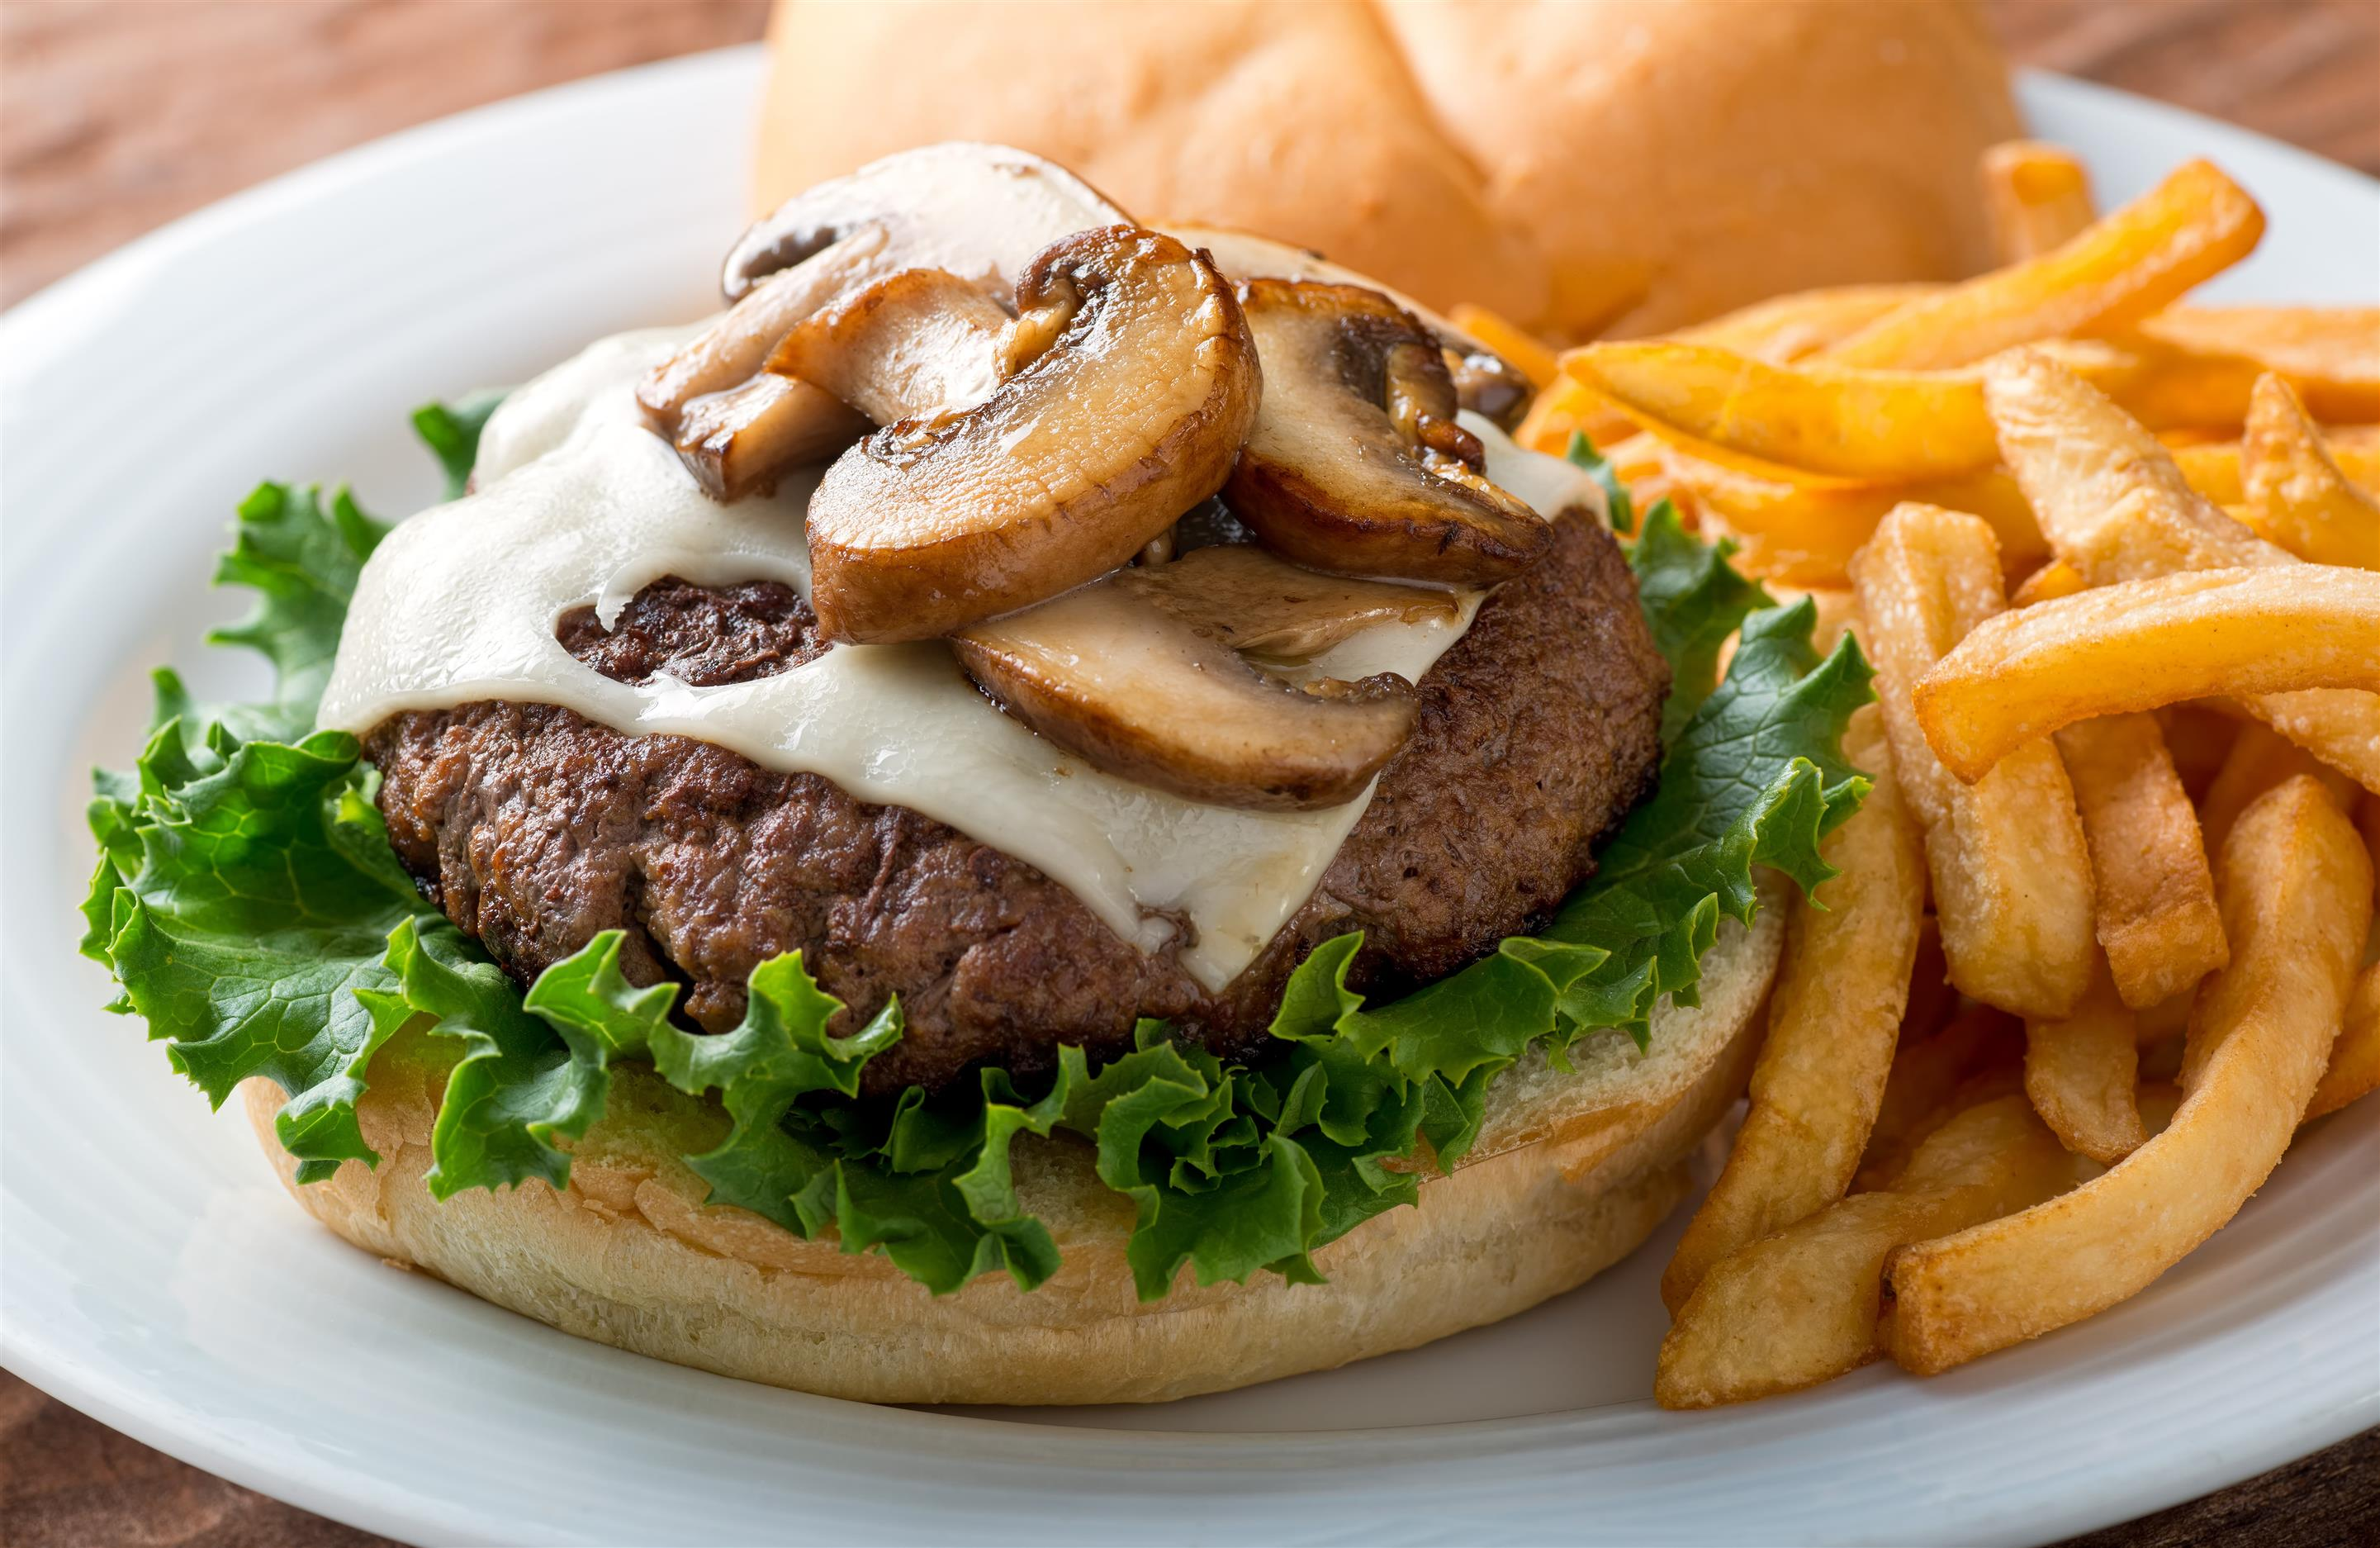 Burger topped with Mushroom and Cheese